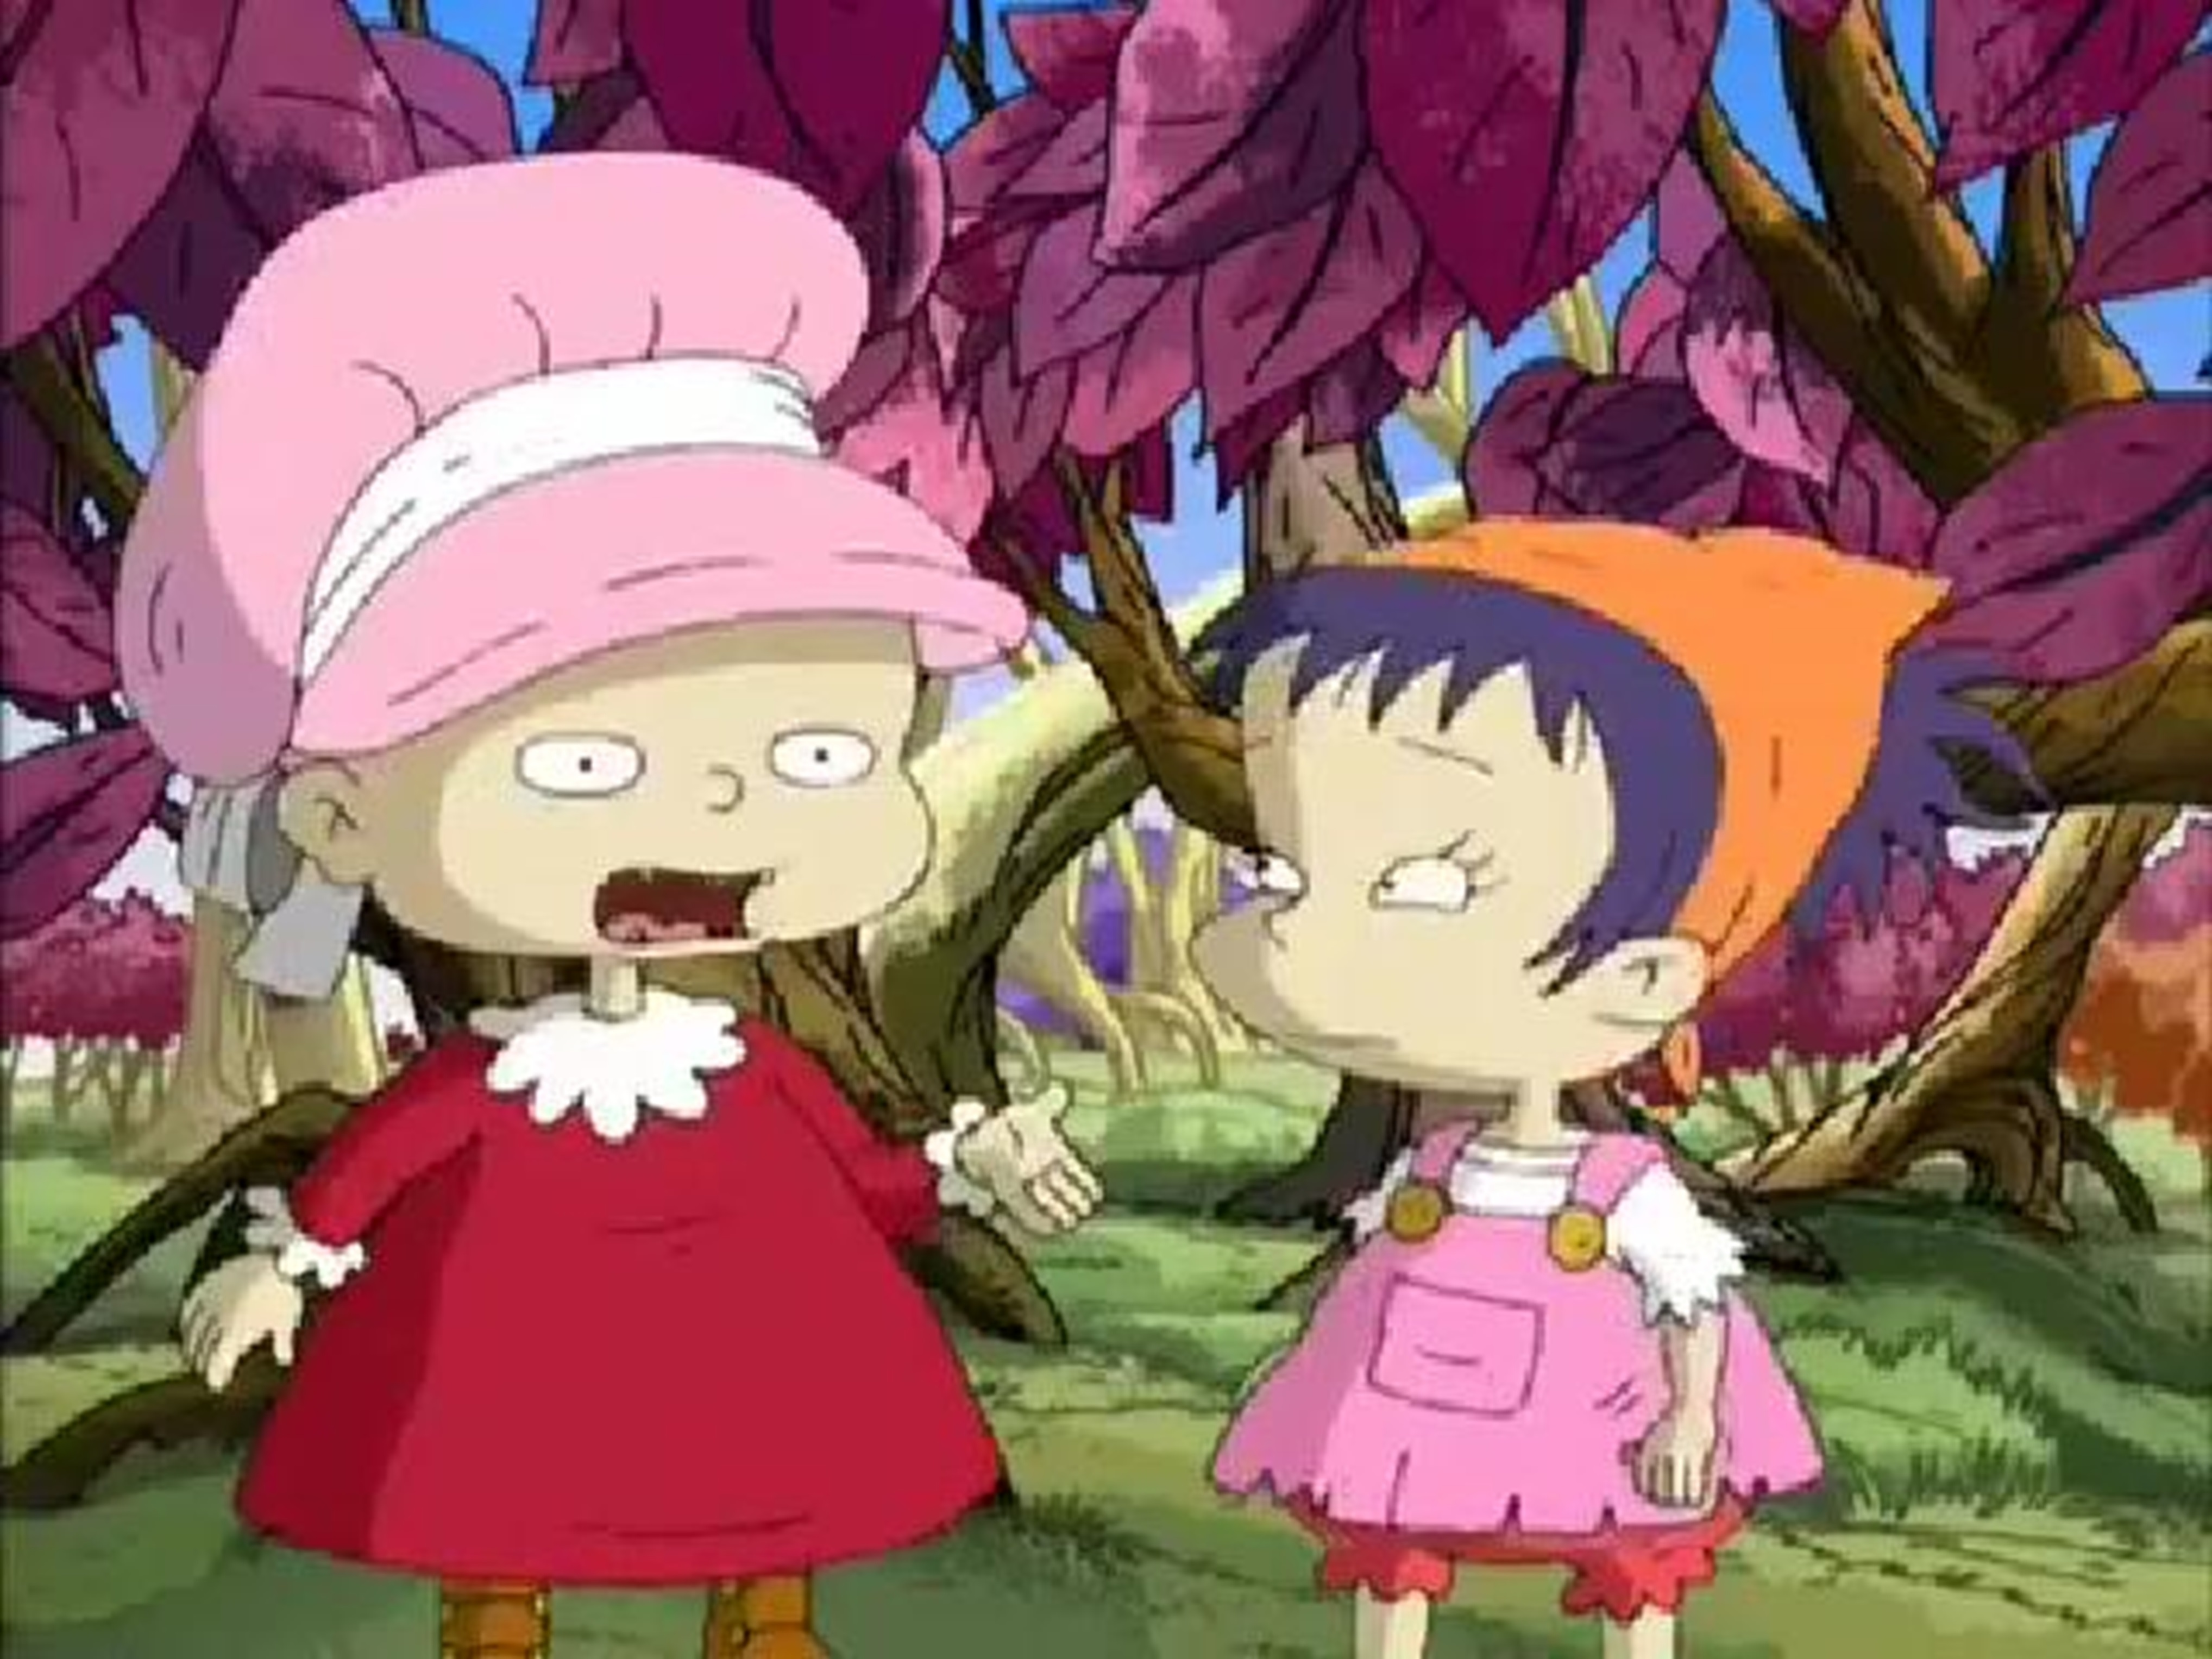 Rugrats Tales from the Crib: Three Jacks and a Beanstalk 1594